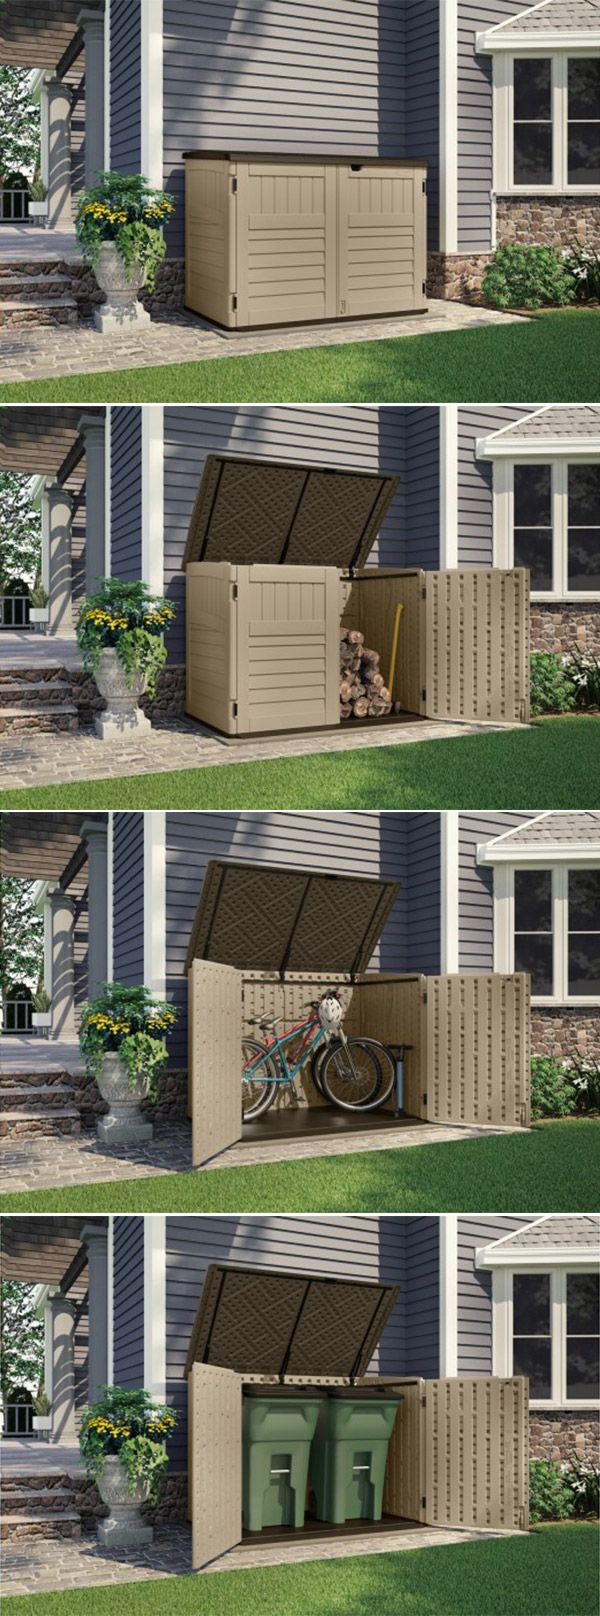 The multipurpose shed from Suncast includes double doors for easy access to your essentials.